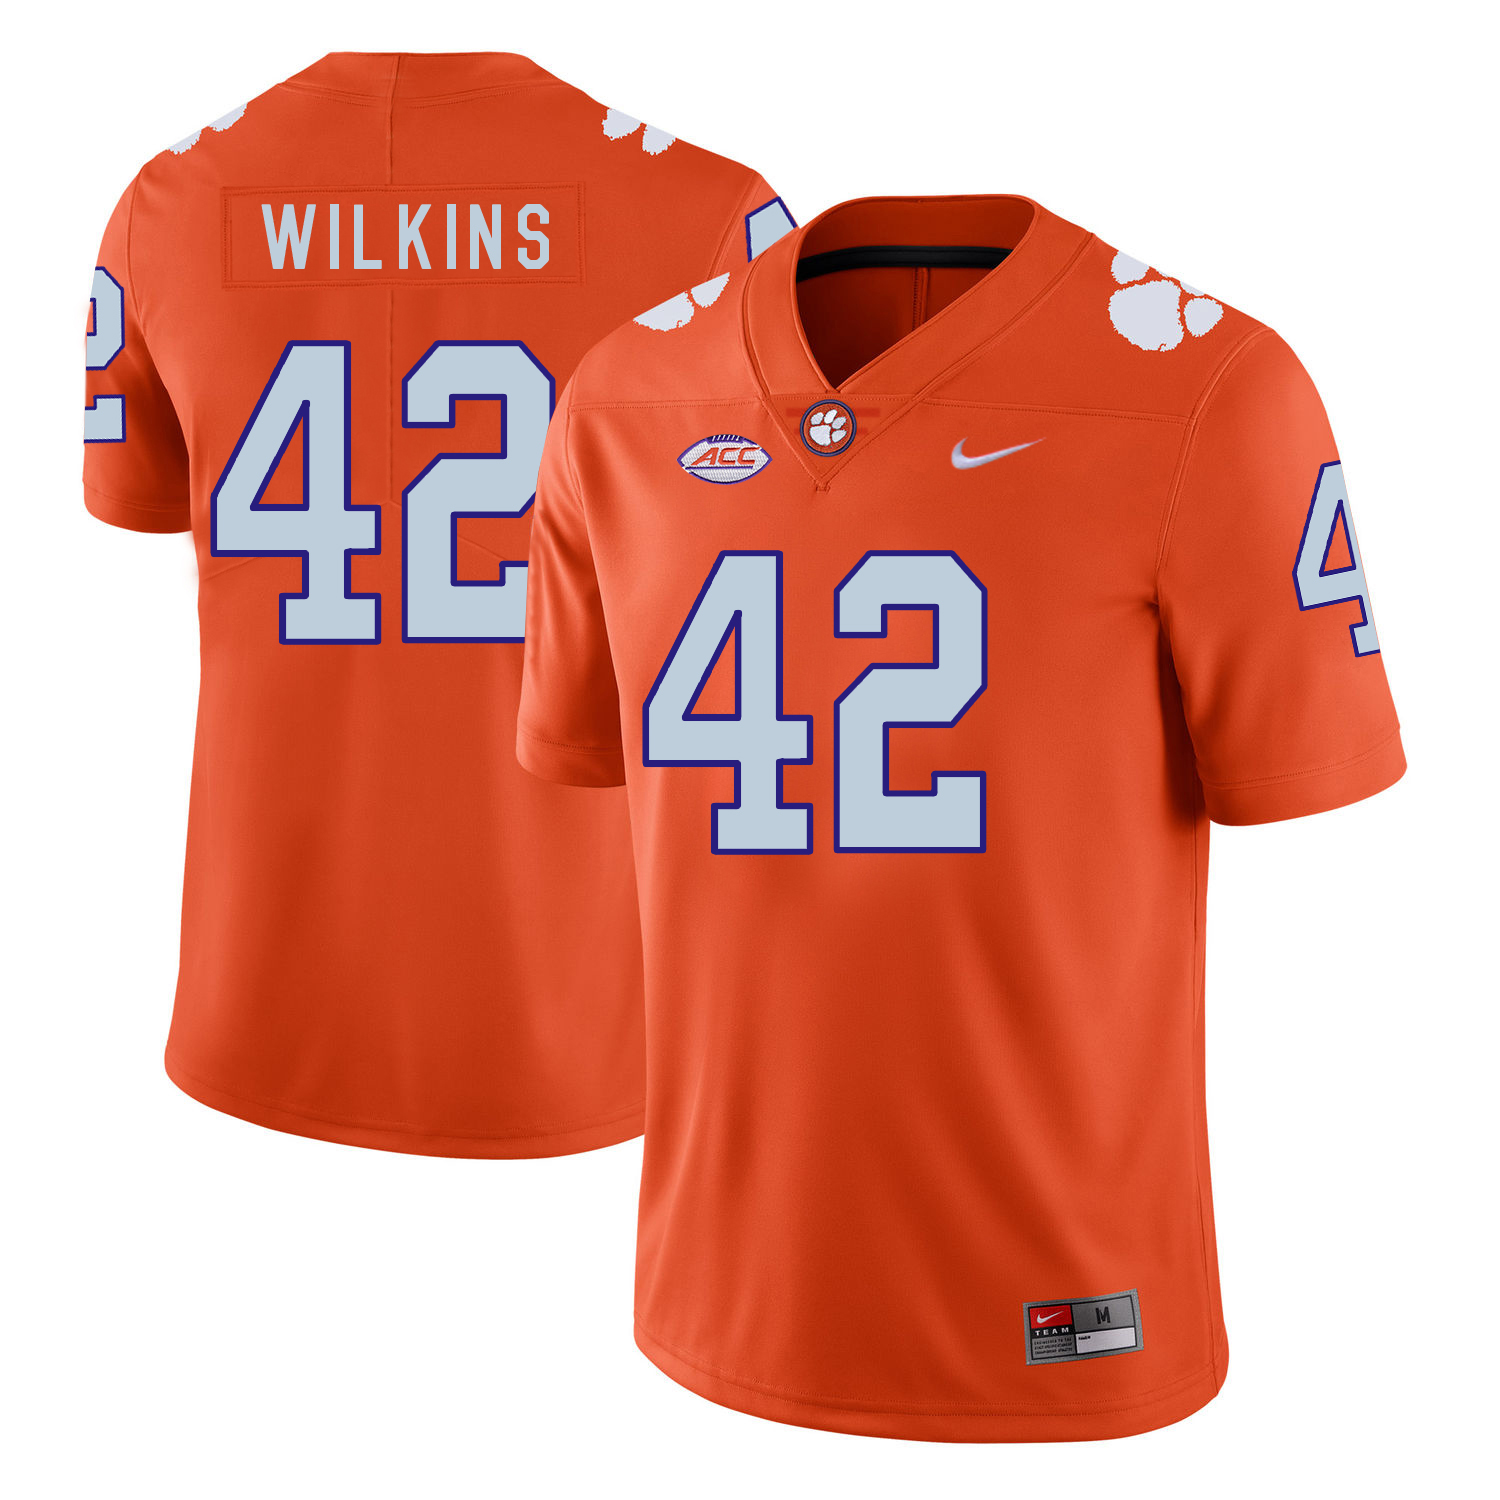 Clemson Tigers 42 Christian Wilkins Orange Nike College Football Jersey